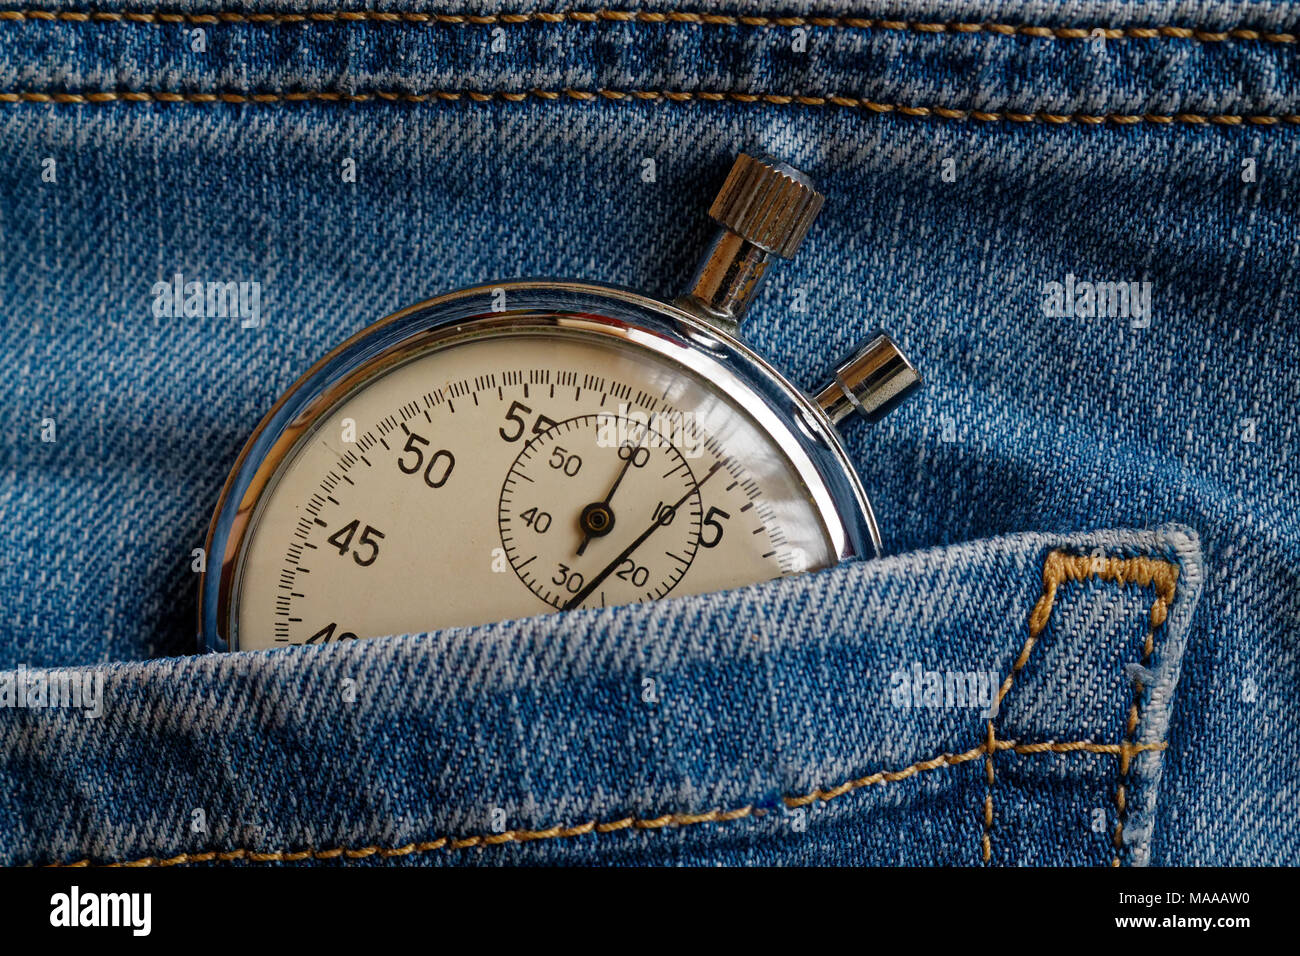 Vintage antiques Stopwatch, in worn dark blue jeans pocket